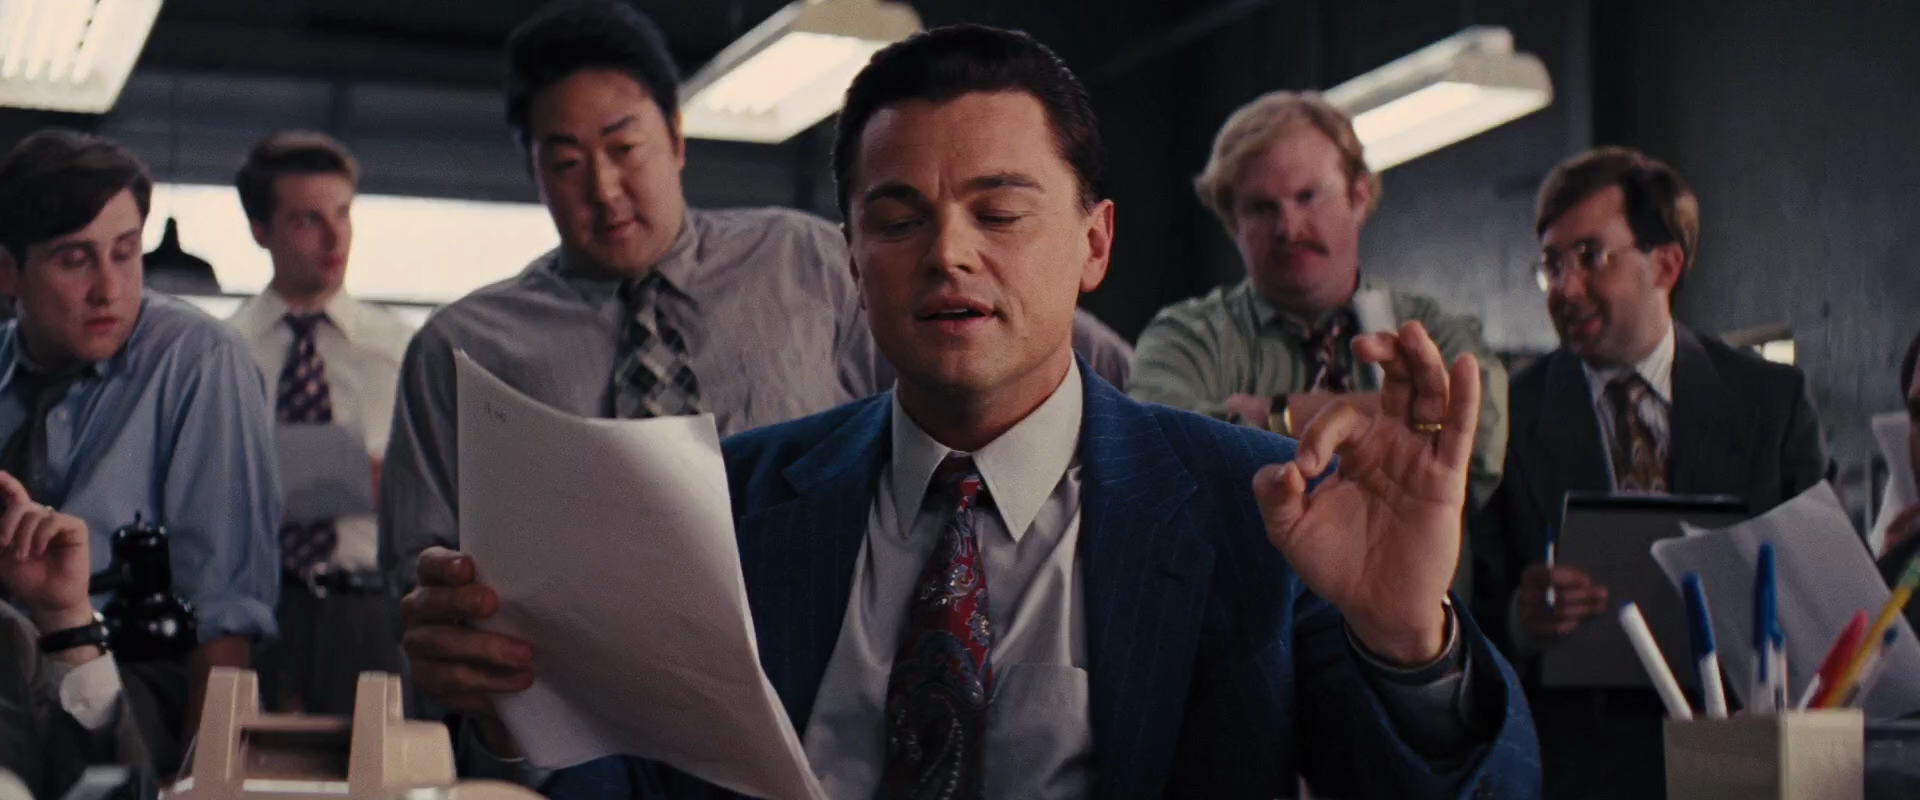 Download The Wolf of Wall Street (2013)1080p BluRay 2.20GB